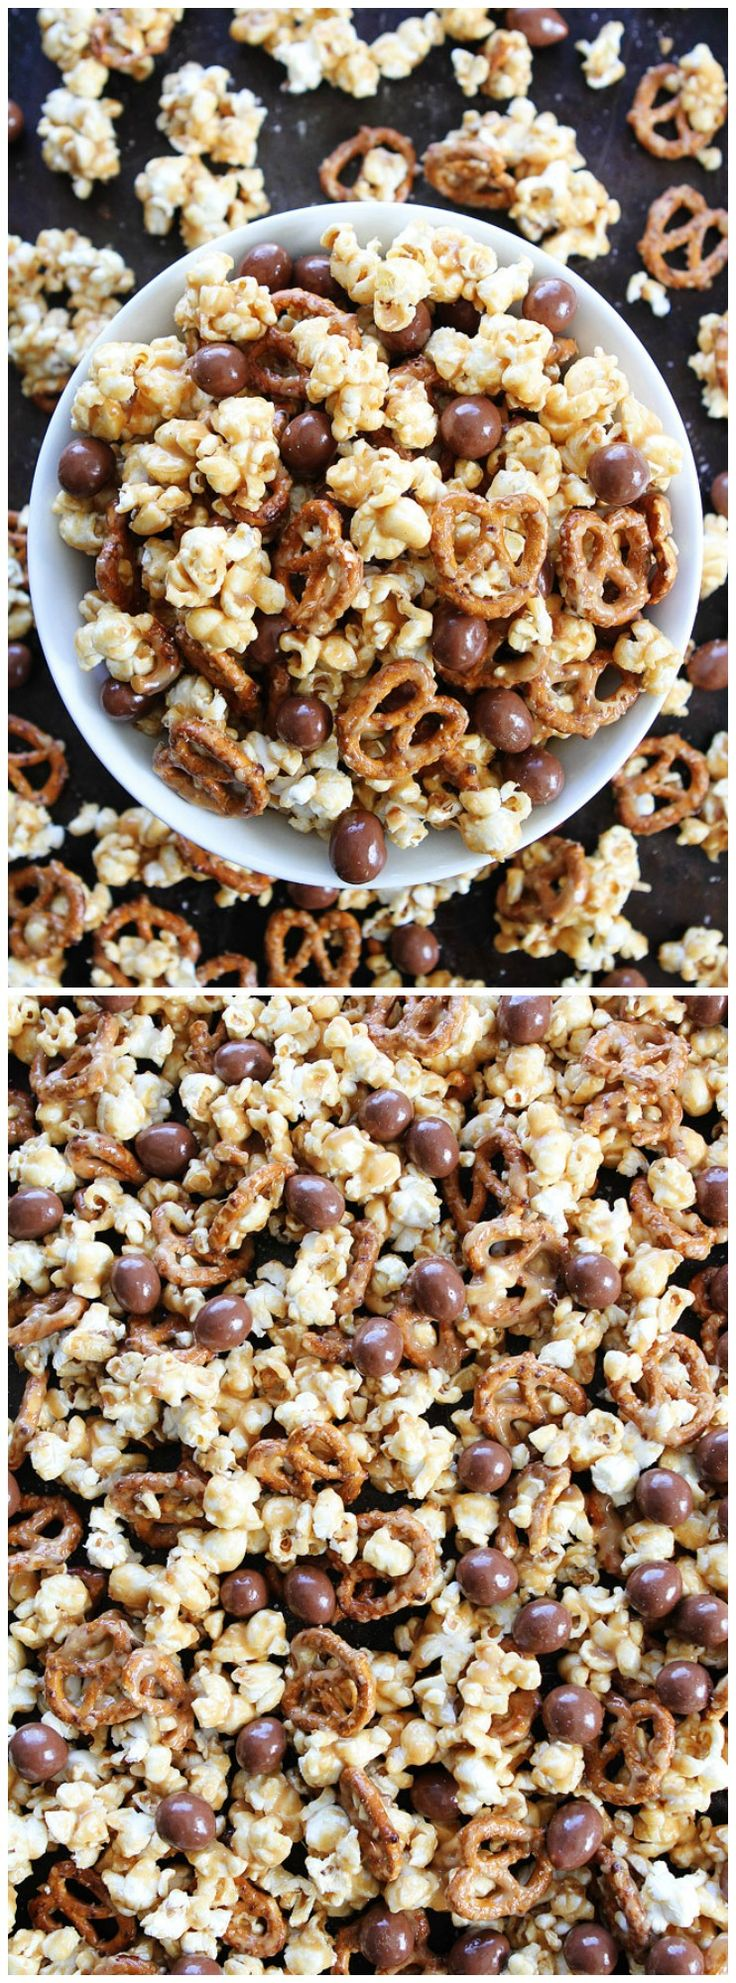 Peanut Butter Pretzel Caramel Corn Recipe on twopeasandtheirpod.com This sweet and salty caramel corn is amazing! Perfect for parties, game day, or movie night!